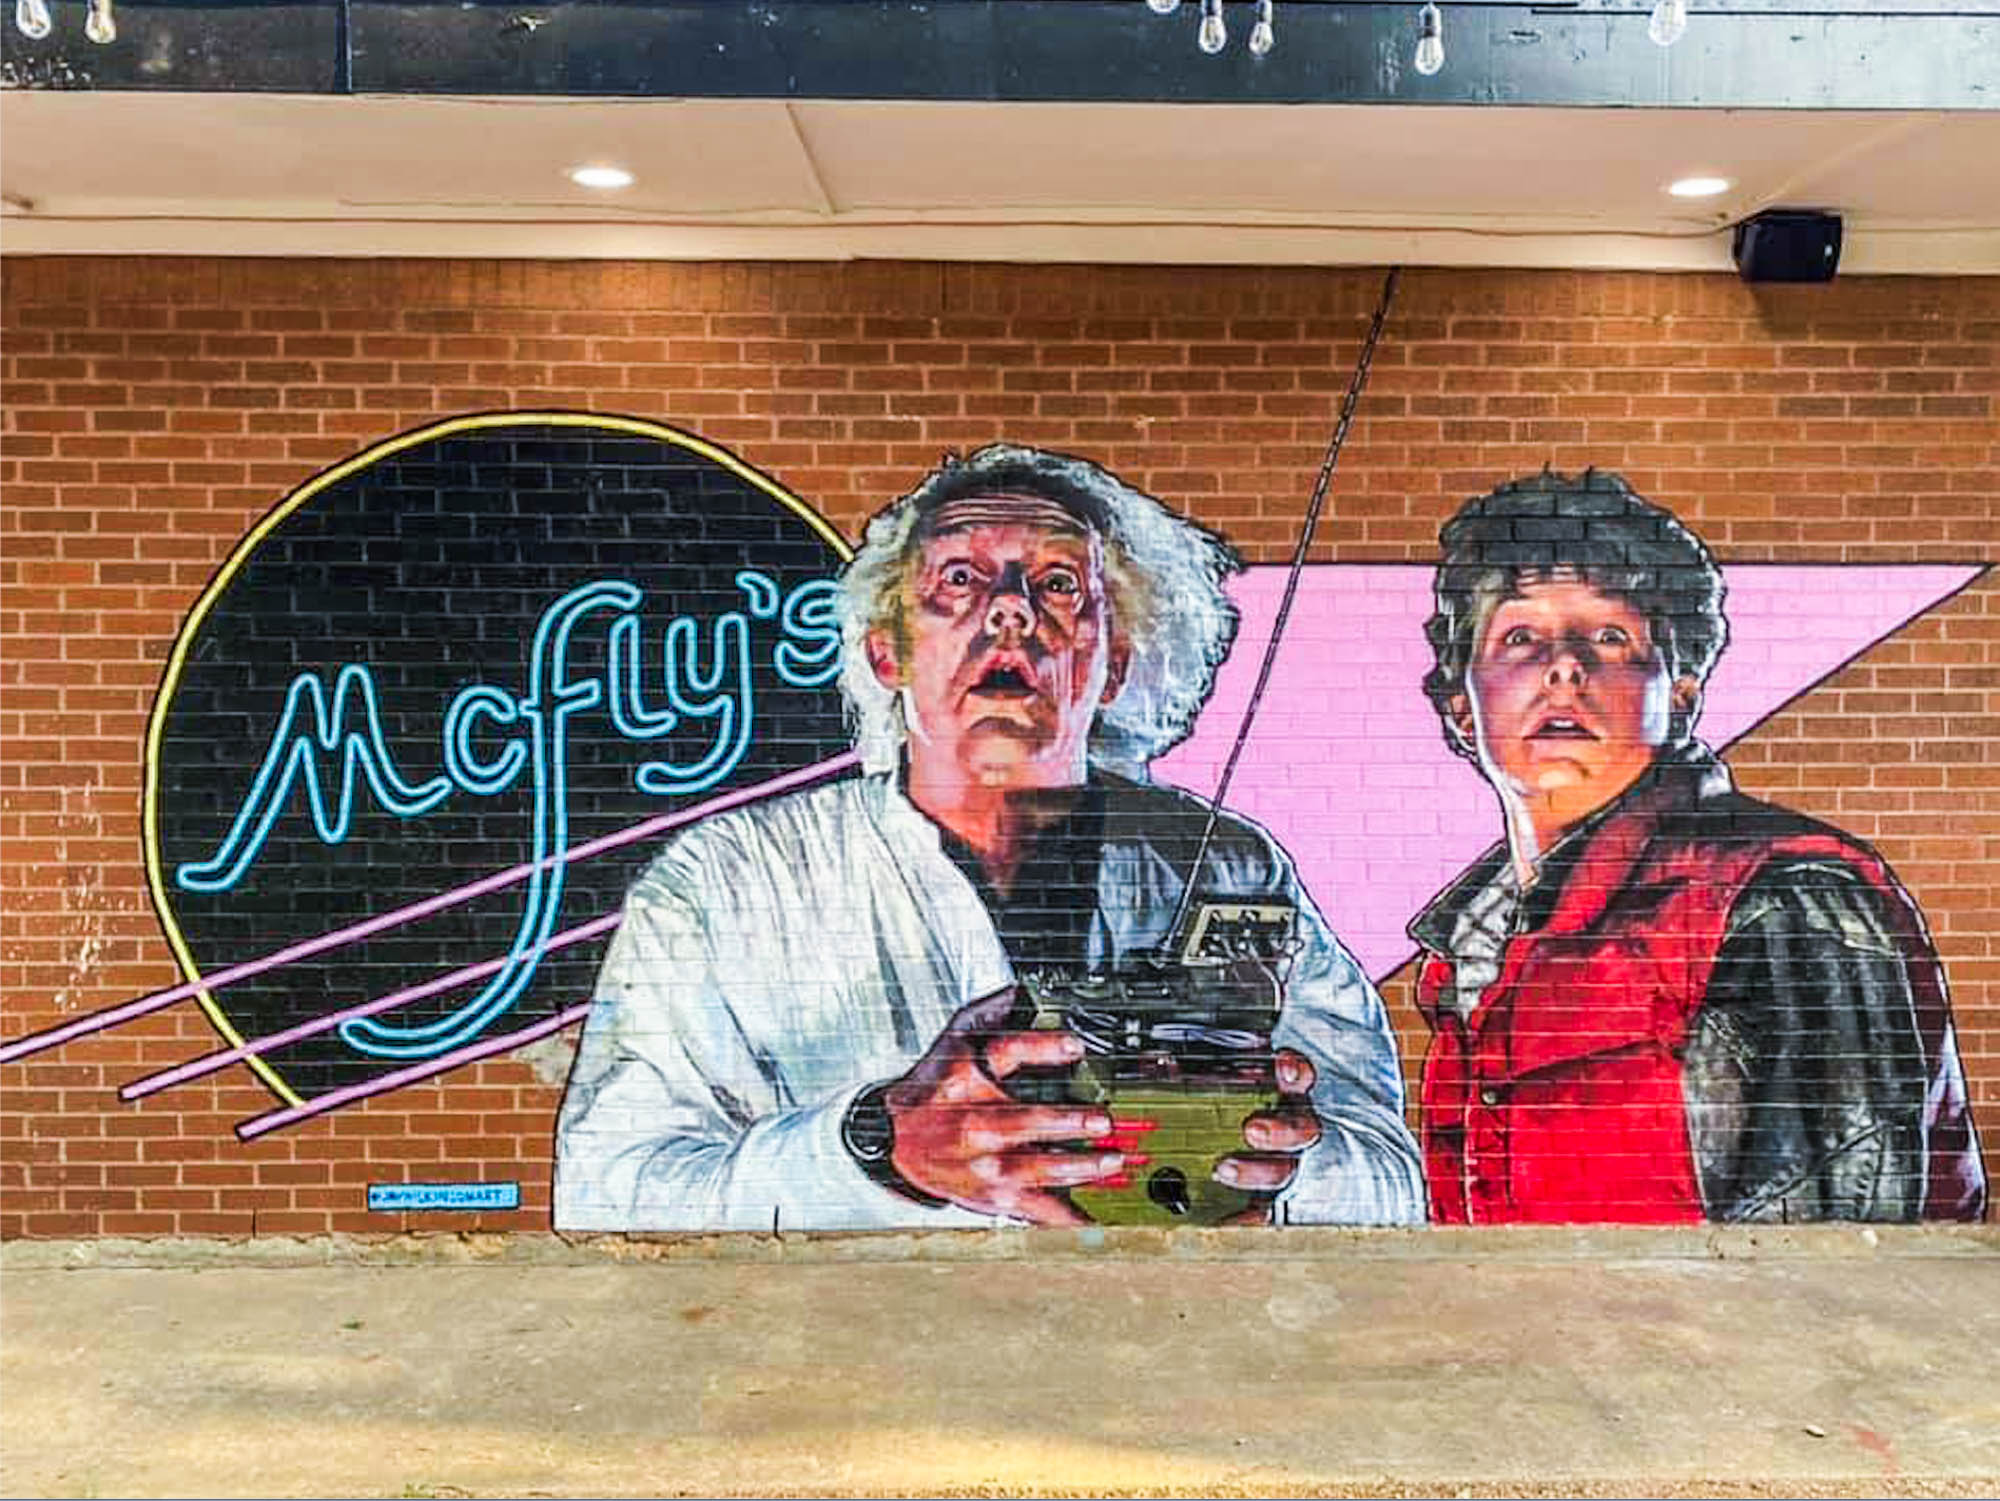 McFly's Pub exterior mural